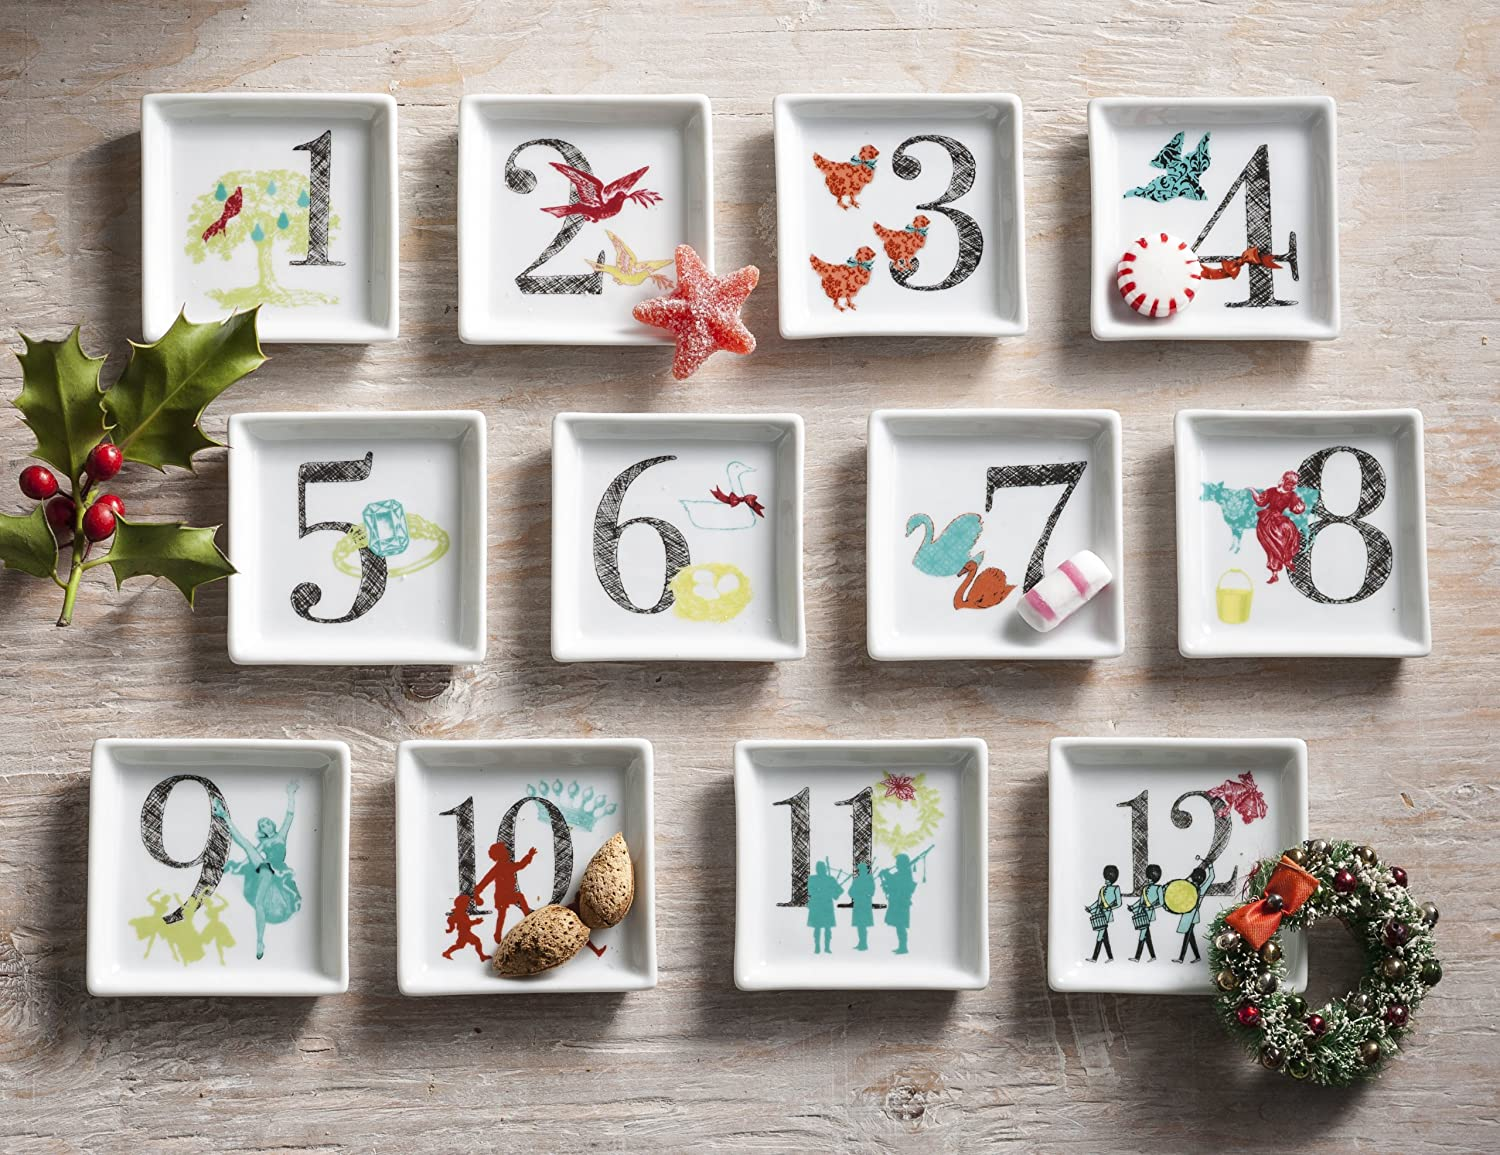 Rosanna 12 Days of Christmas Trinket Dishes & 12 Days of Christmas Plates Dinnerware and Gifts | WebNuggetz.com